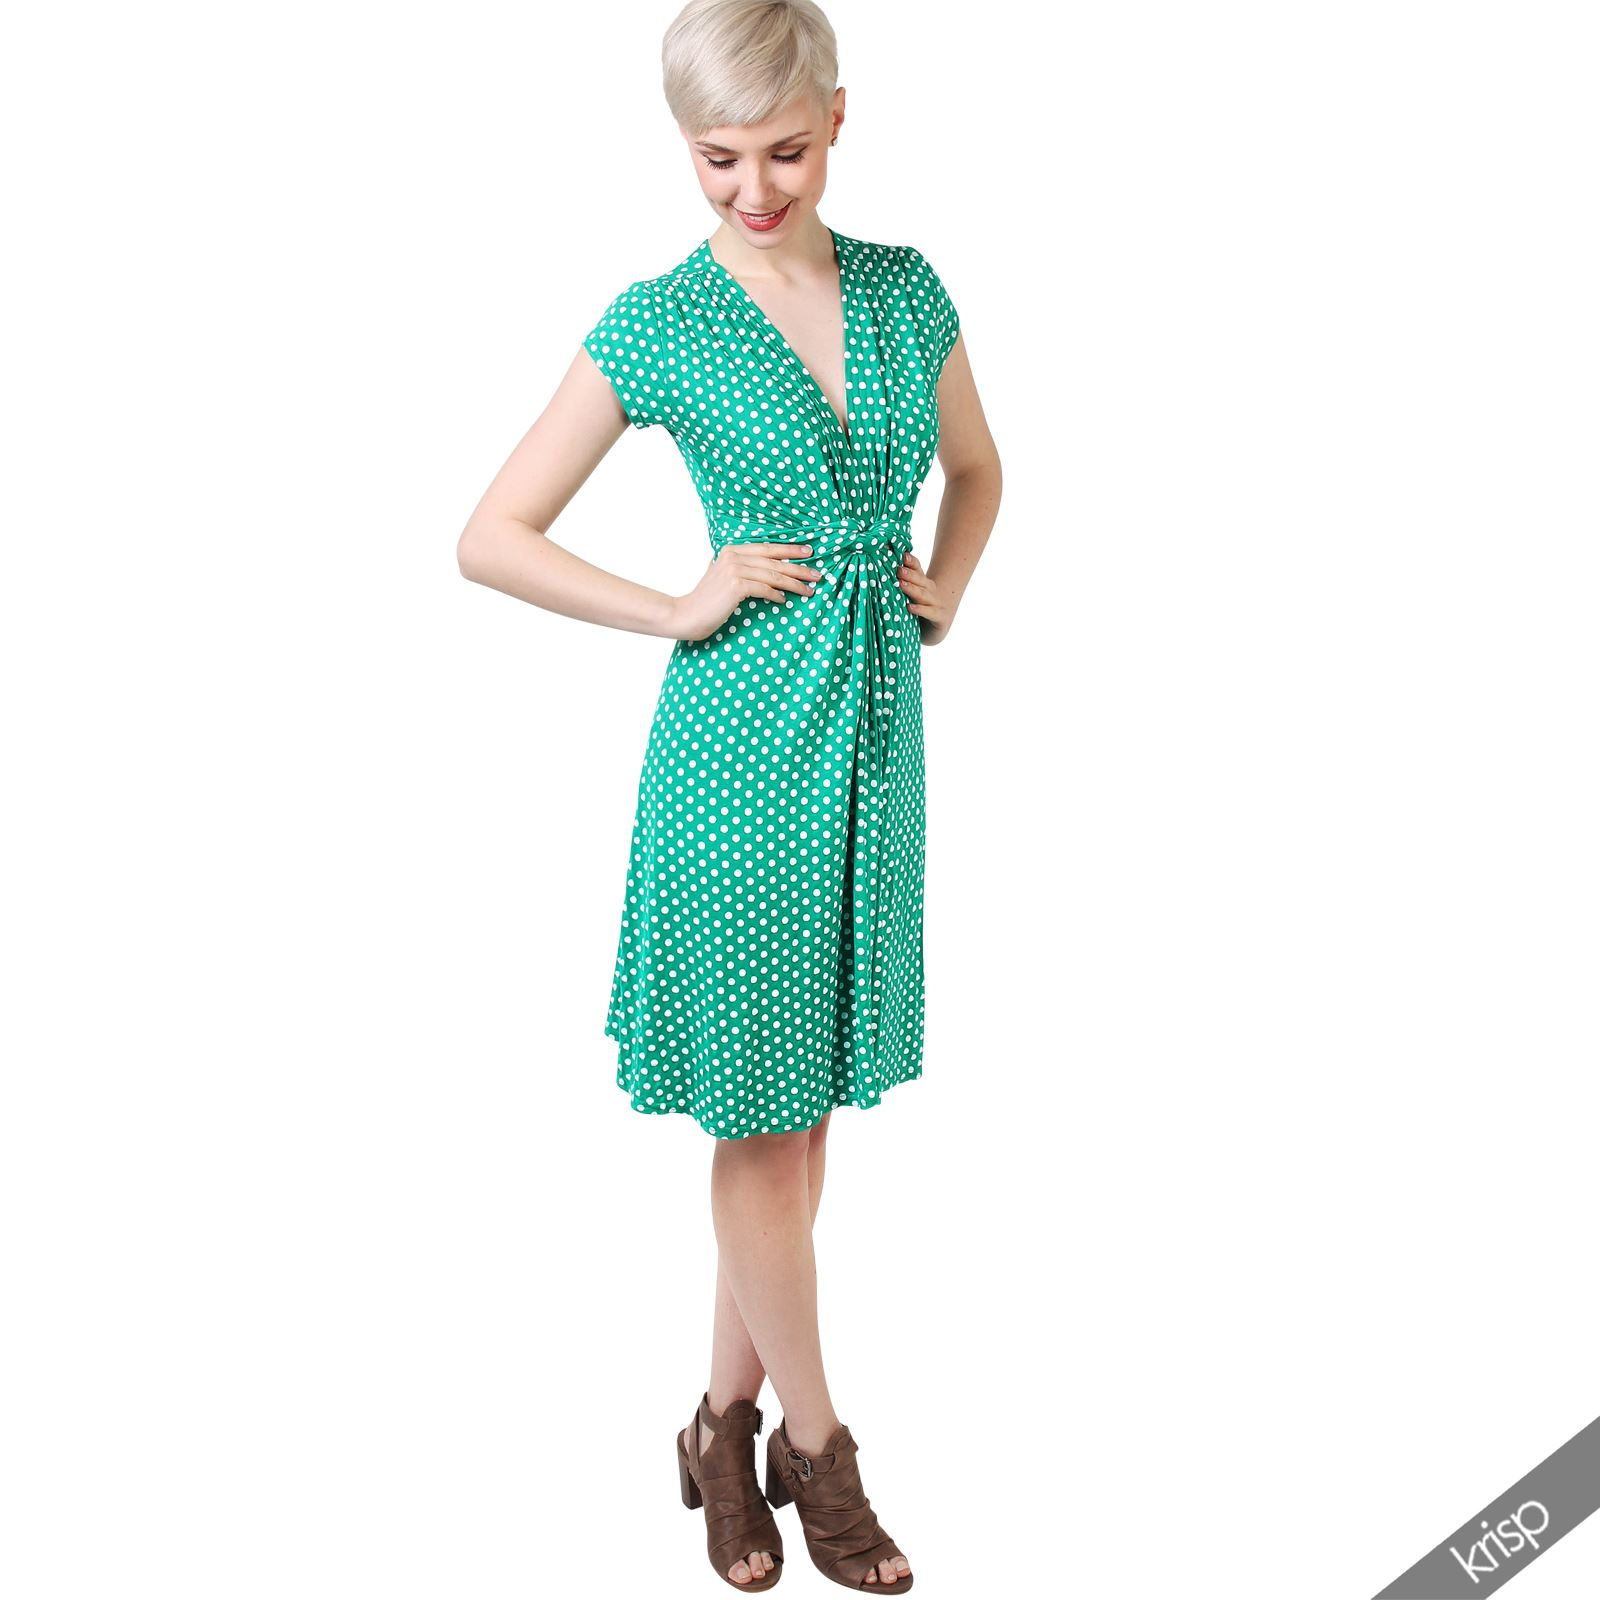 Womens-Polka-Dot-Dress-Pleated-Skirt-Wrap-Front-Mini-V-Neck-Top-Swing thumbnail 12